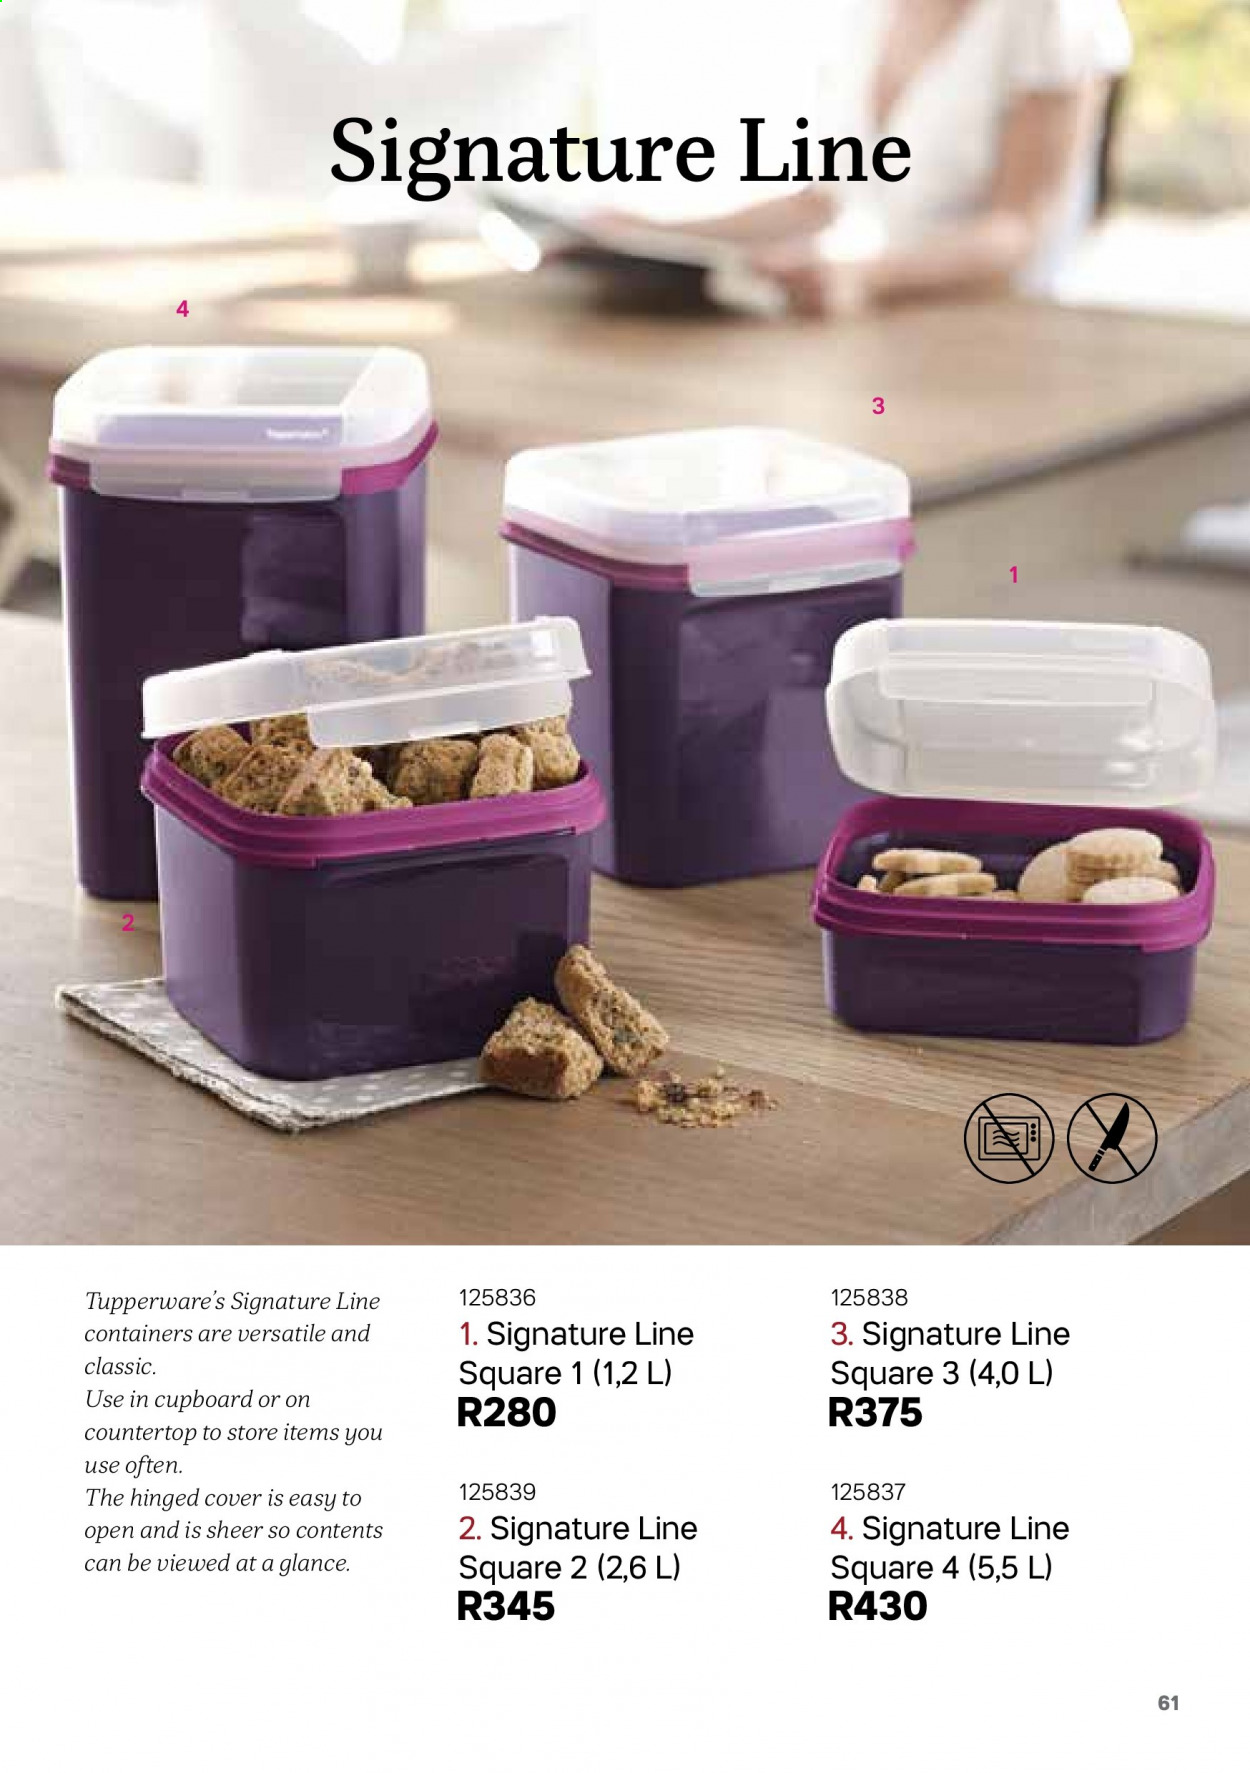 Tupperware catalogue . Page 61.